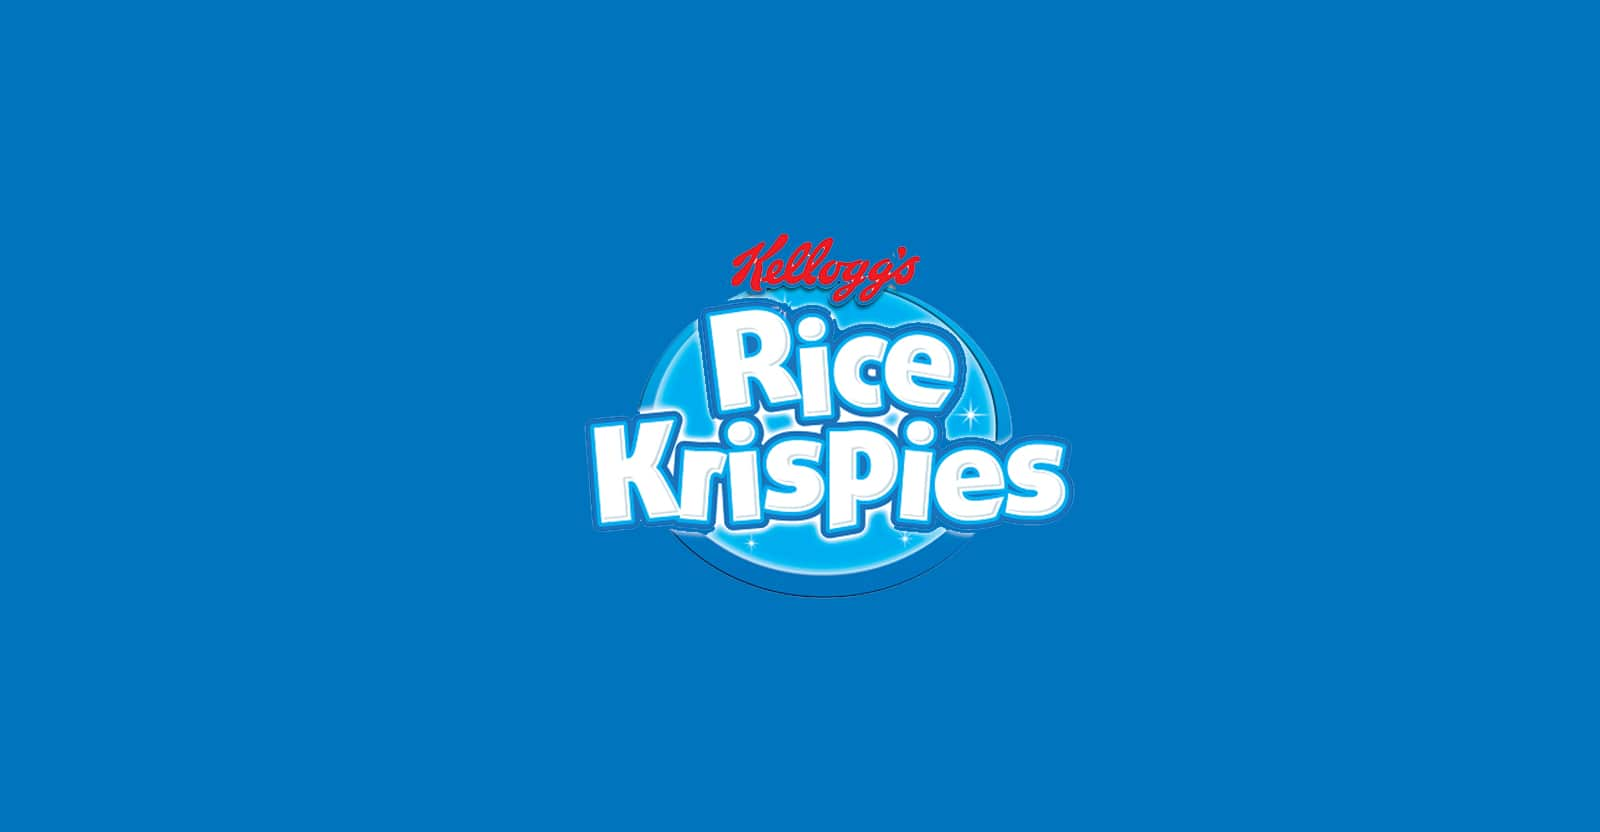 are rice krispies gluten-free